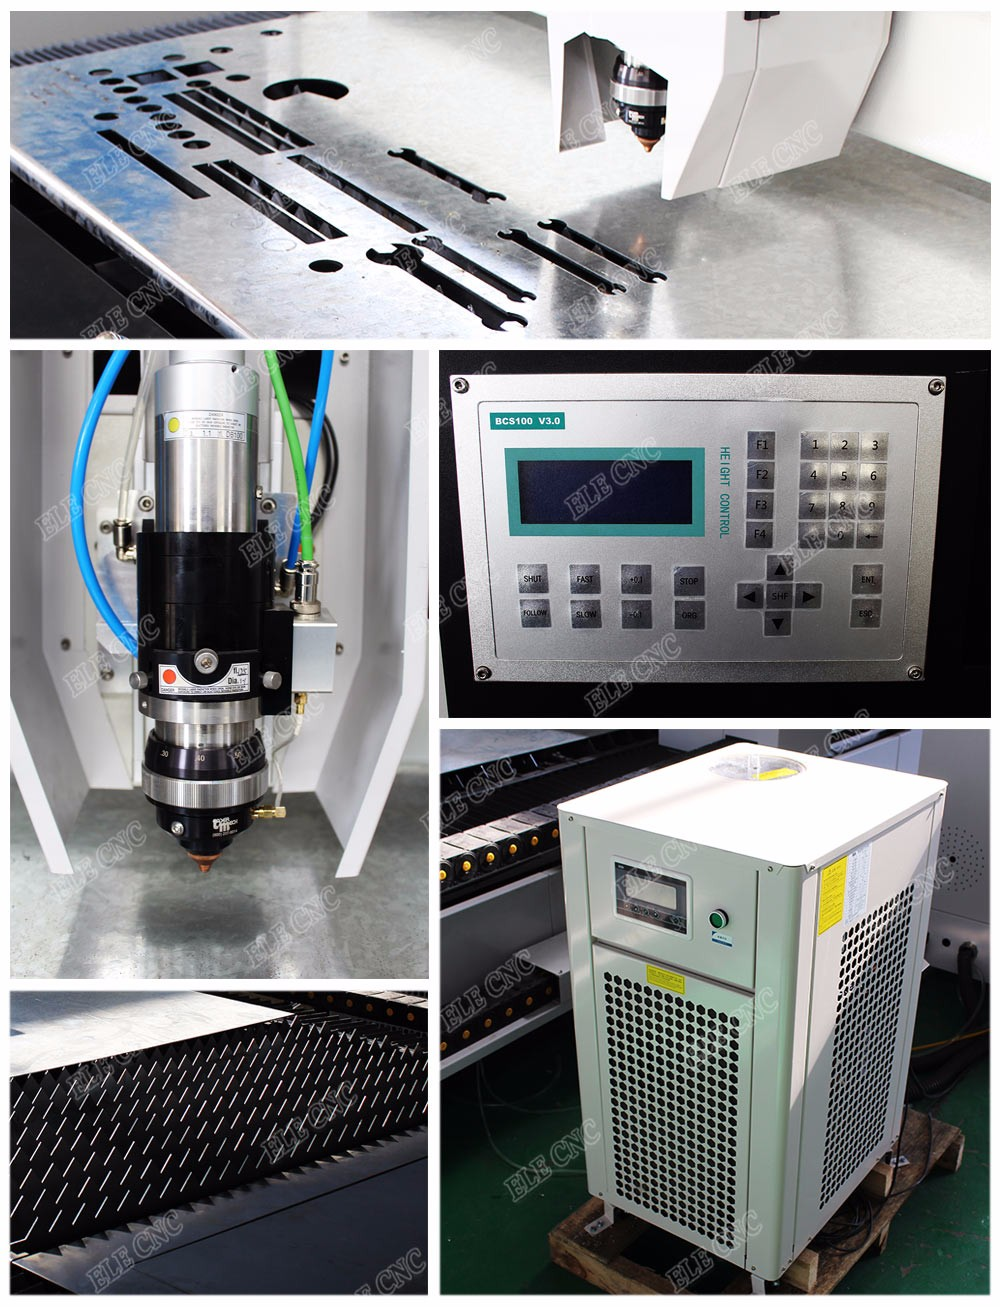 Metal cutting stainless steel fiber laser machine , laser engraving machine , laser engraver with 1500*3000mm working area